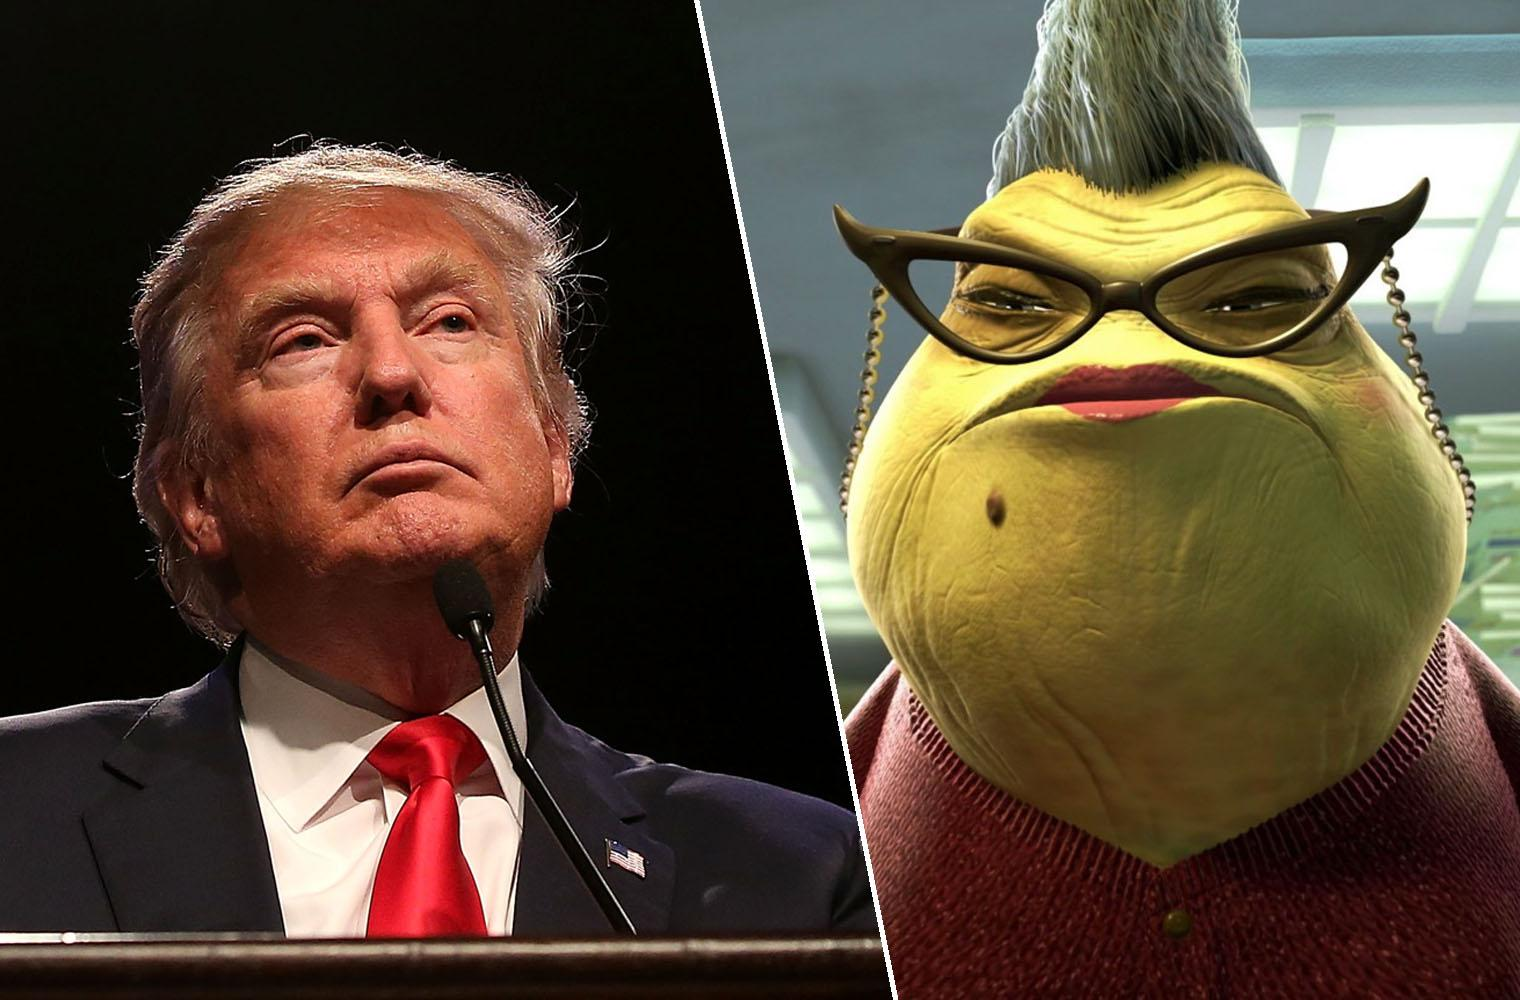 Someone finally turned Donald Trump into Roz from Monsters Inc  and